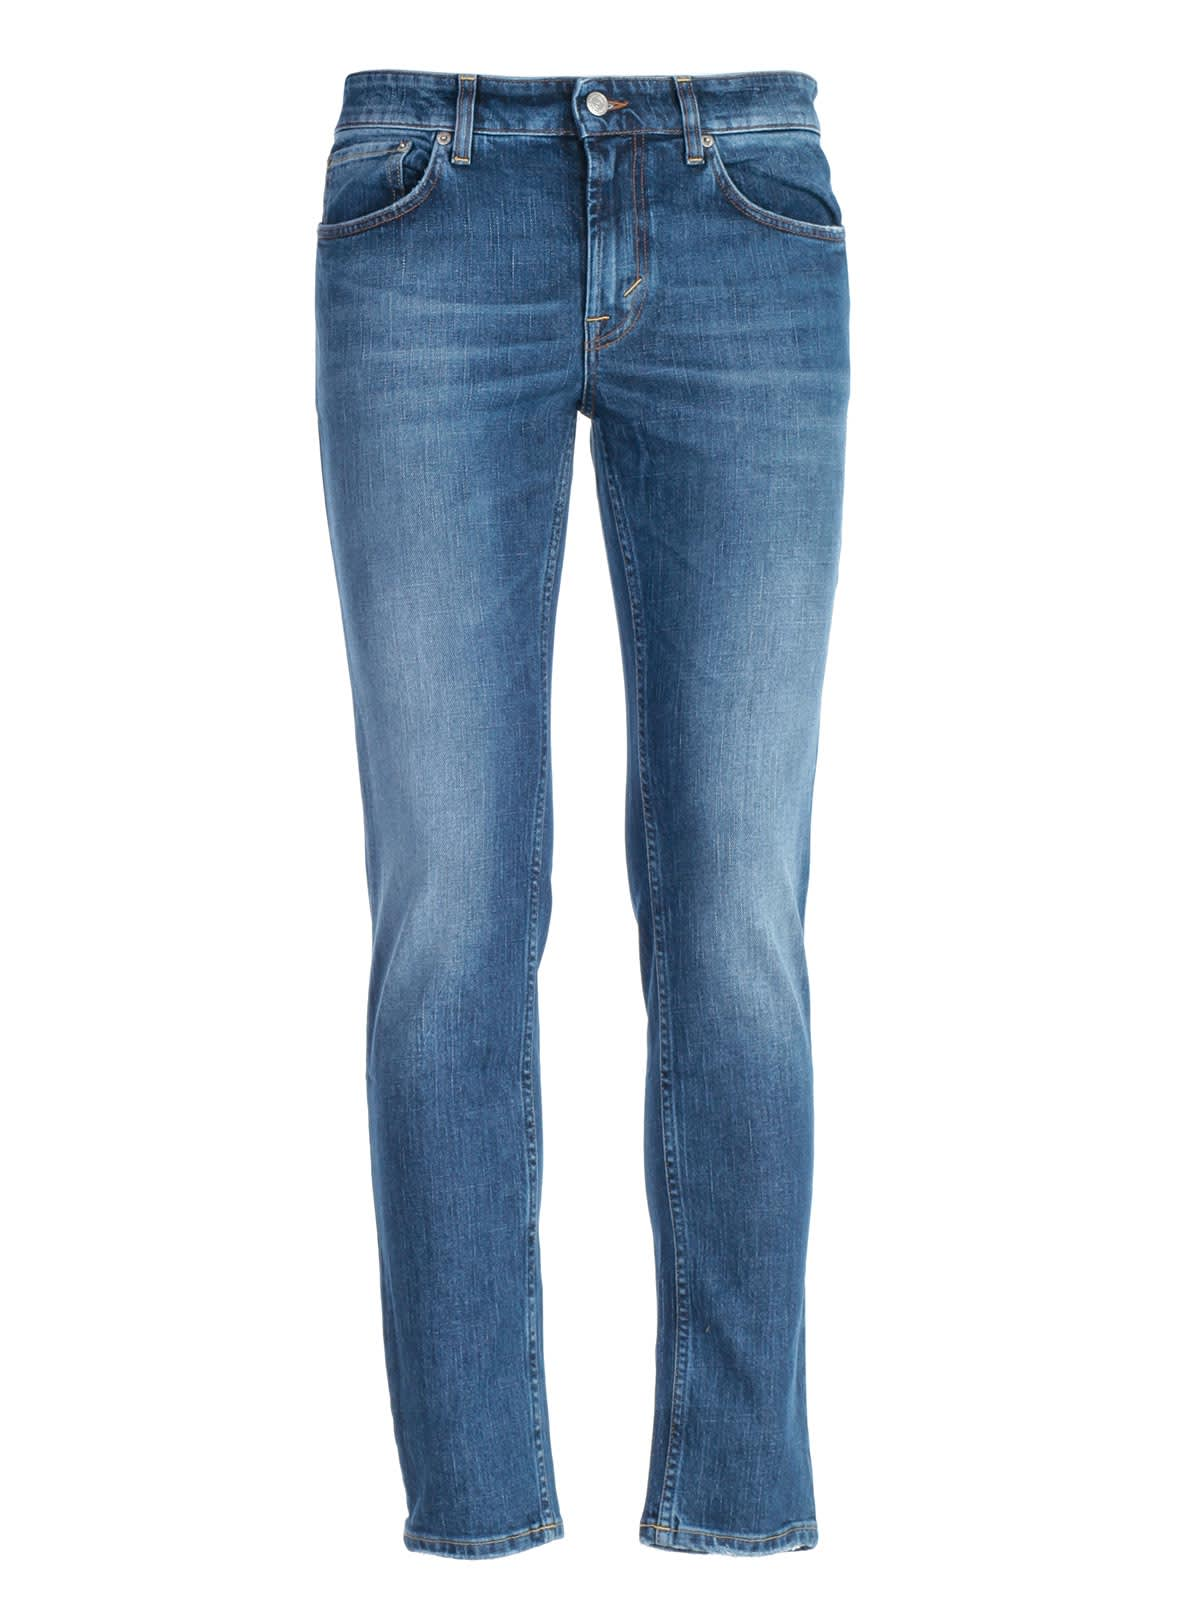 Department 5 Classic Jeans